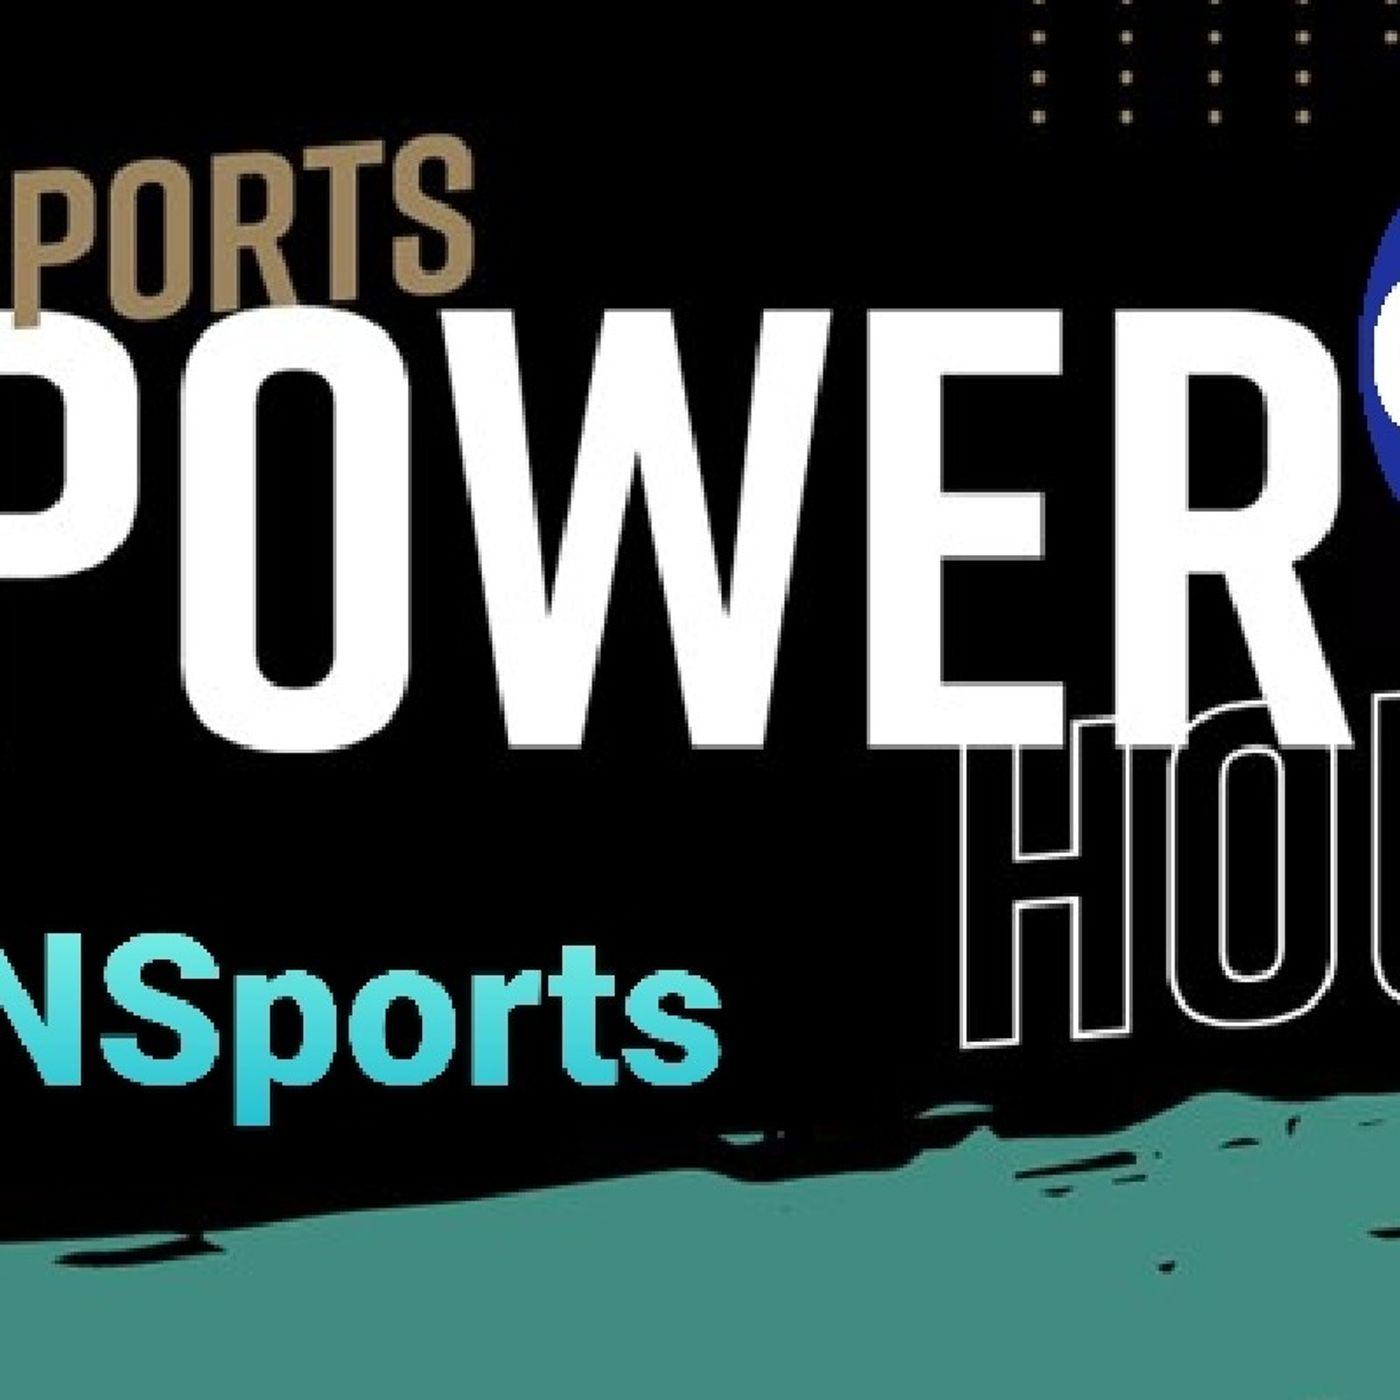 CRN Sports Episode #2 of the #SportsPowerHour Podcast Show! #CRNSports #CRNPodcasts 🎙📱💻